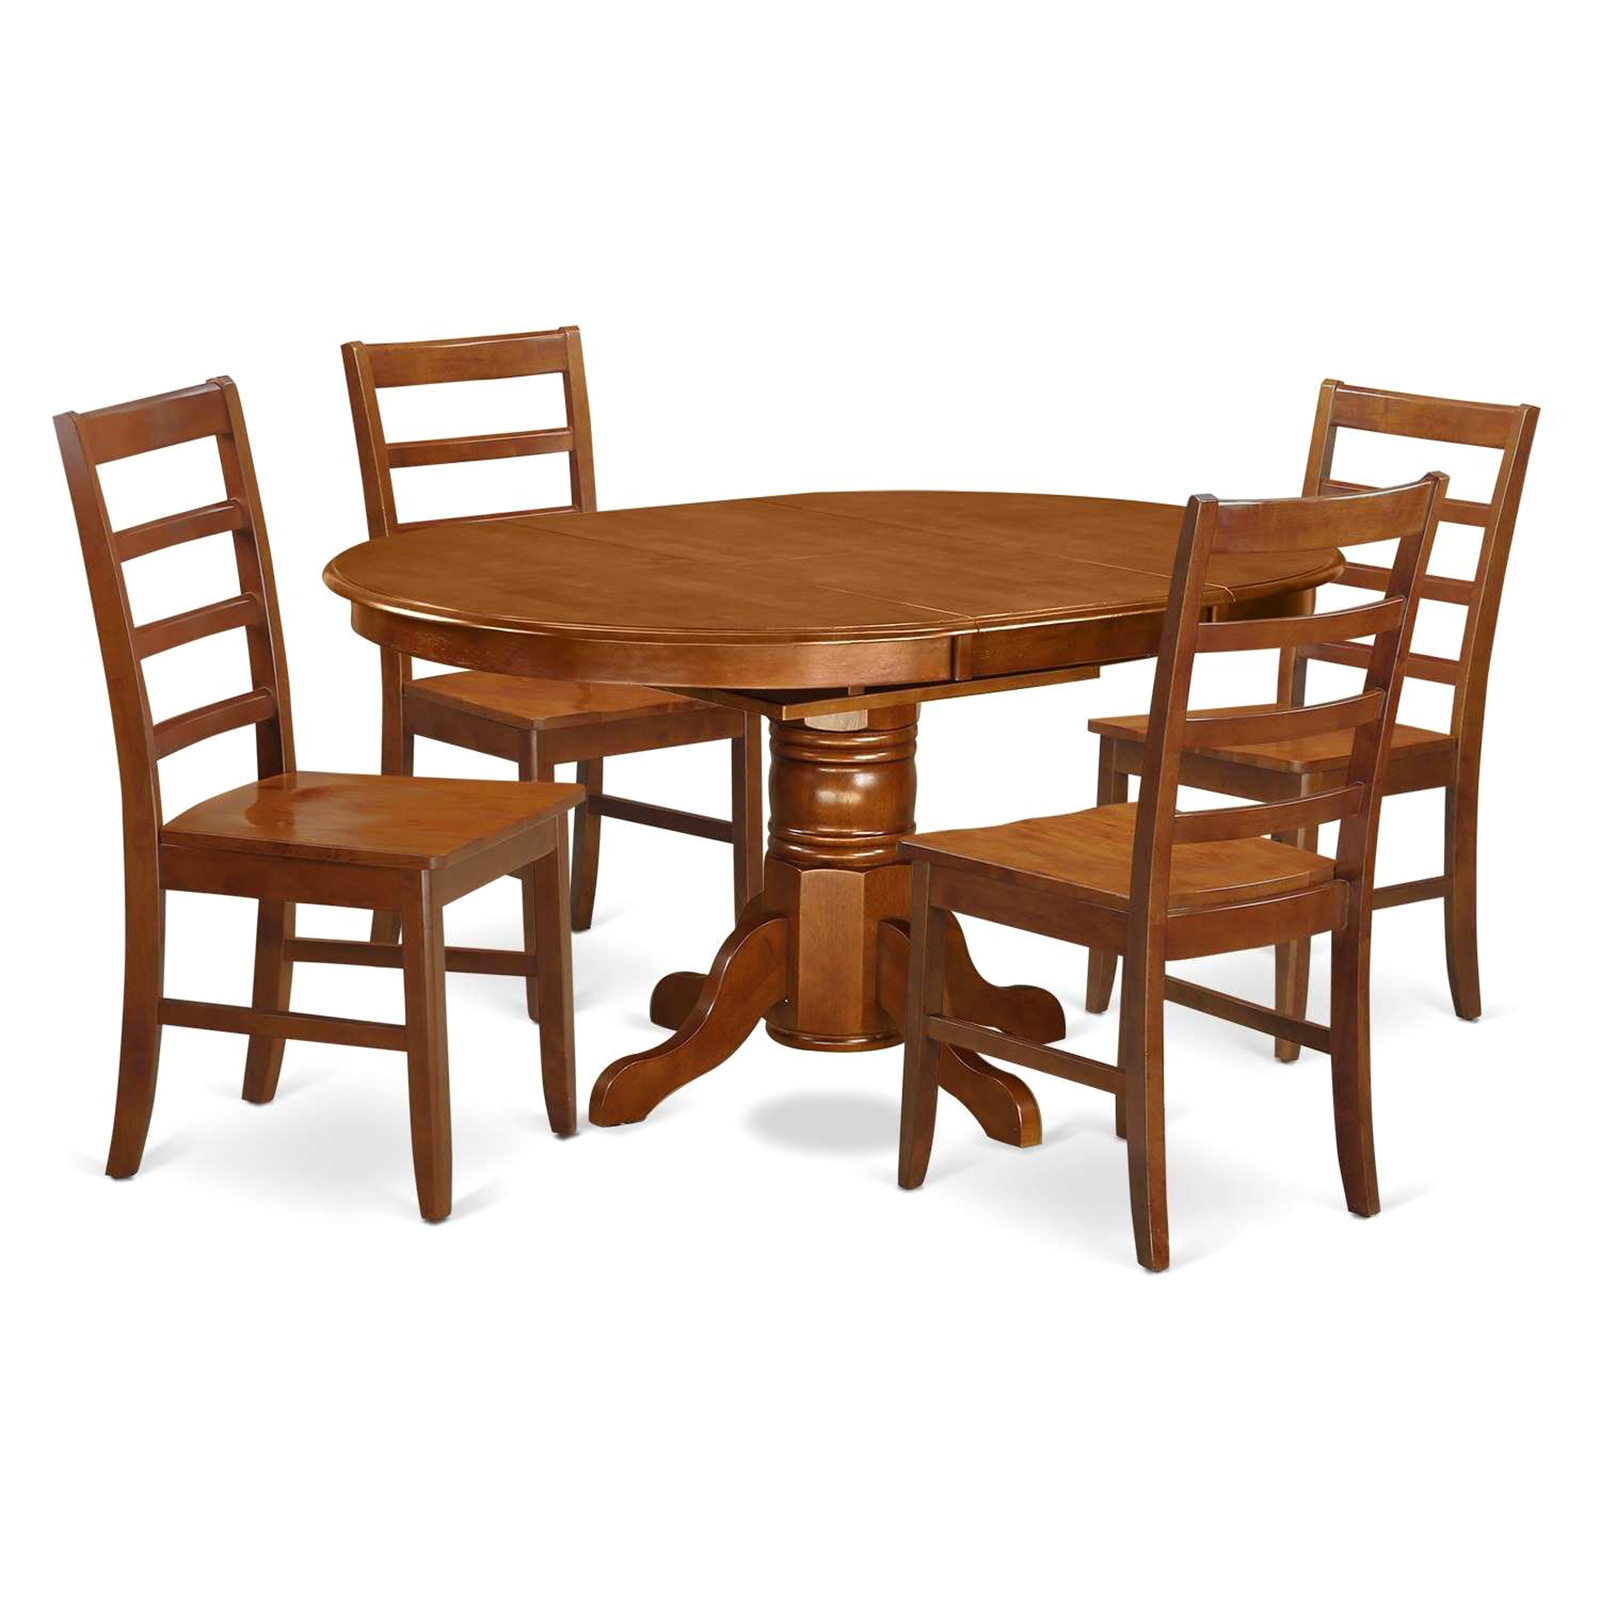 rubberwood butterfly table with 4 chairs dining room chair covers at target east west furniture 5pc rubber wood set sears marketplace saddle brown